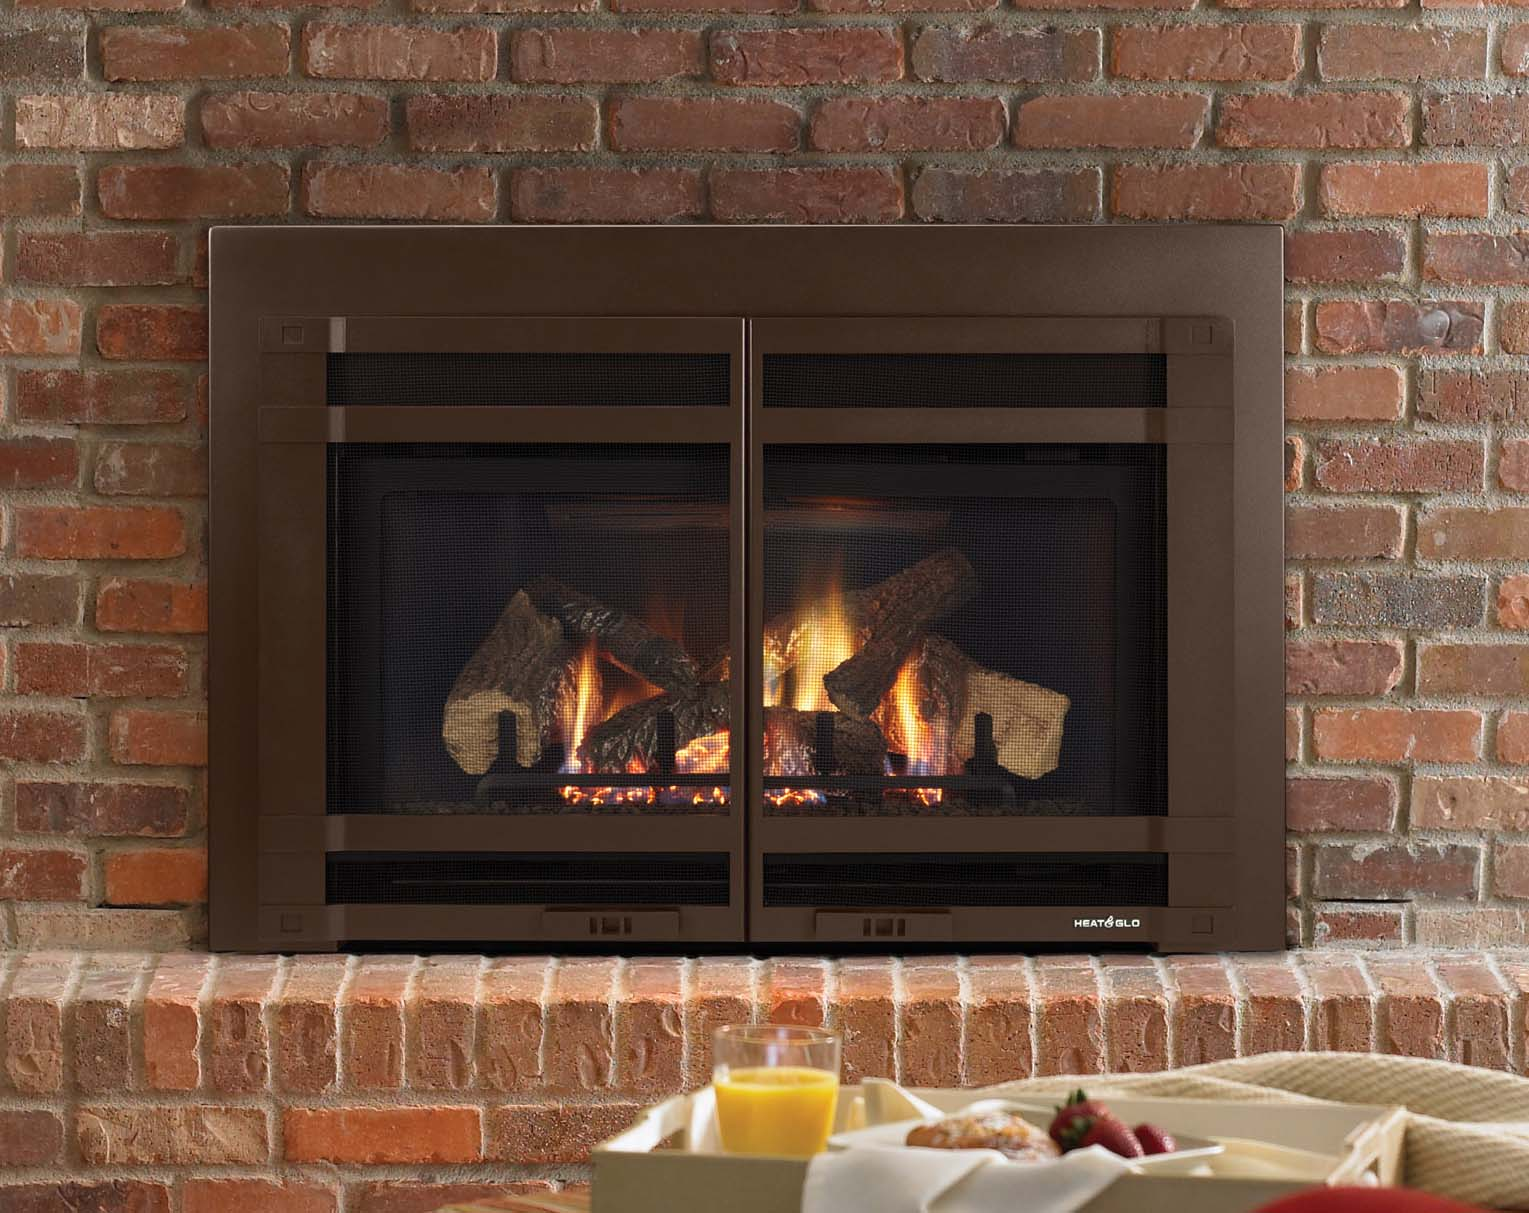 Gas Inserts For Fireplaces Hearth And Home Technologies Recalls Gas Fireplaces Stoves